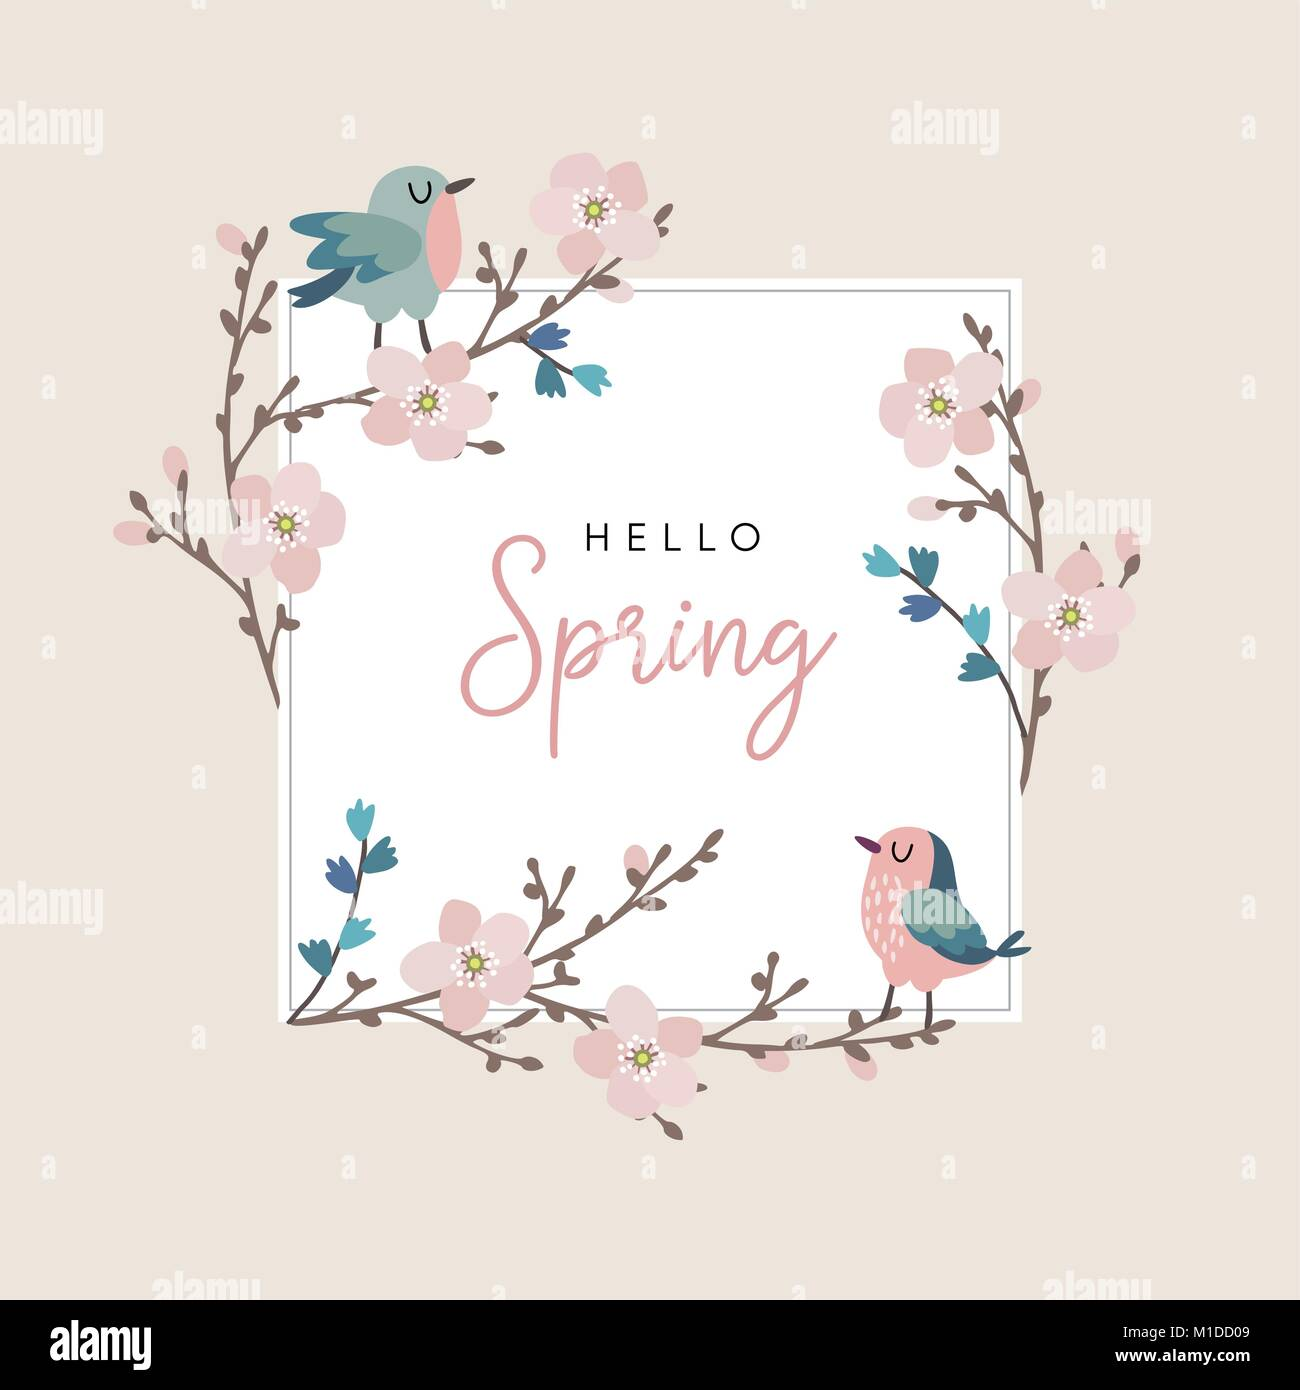 Hello Spring Greeting Card Invitation With Cute Hand Drawn Birds